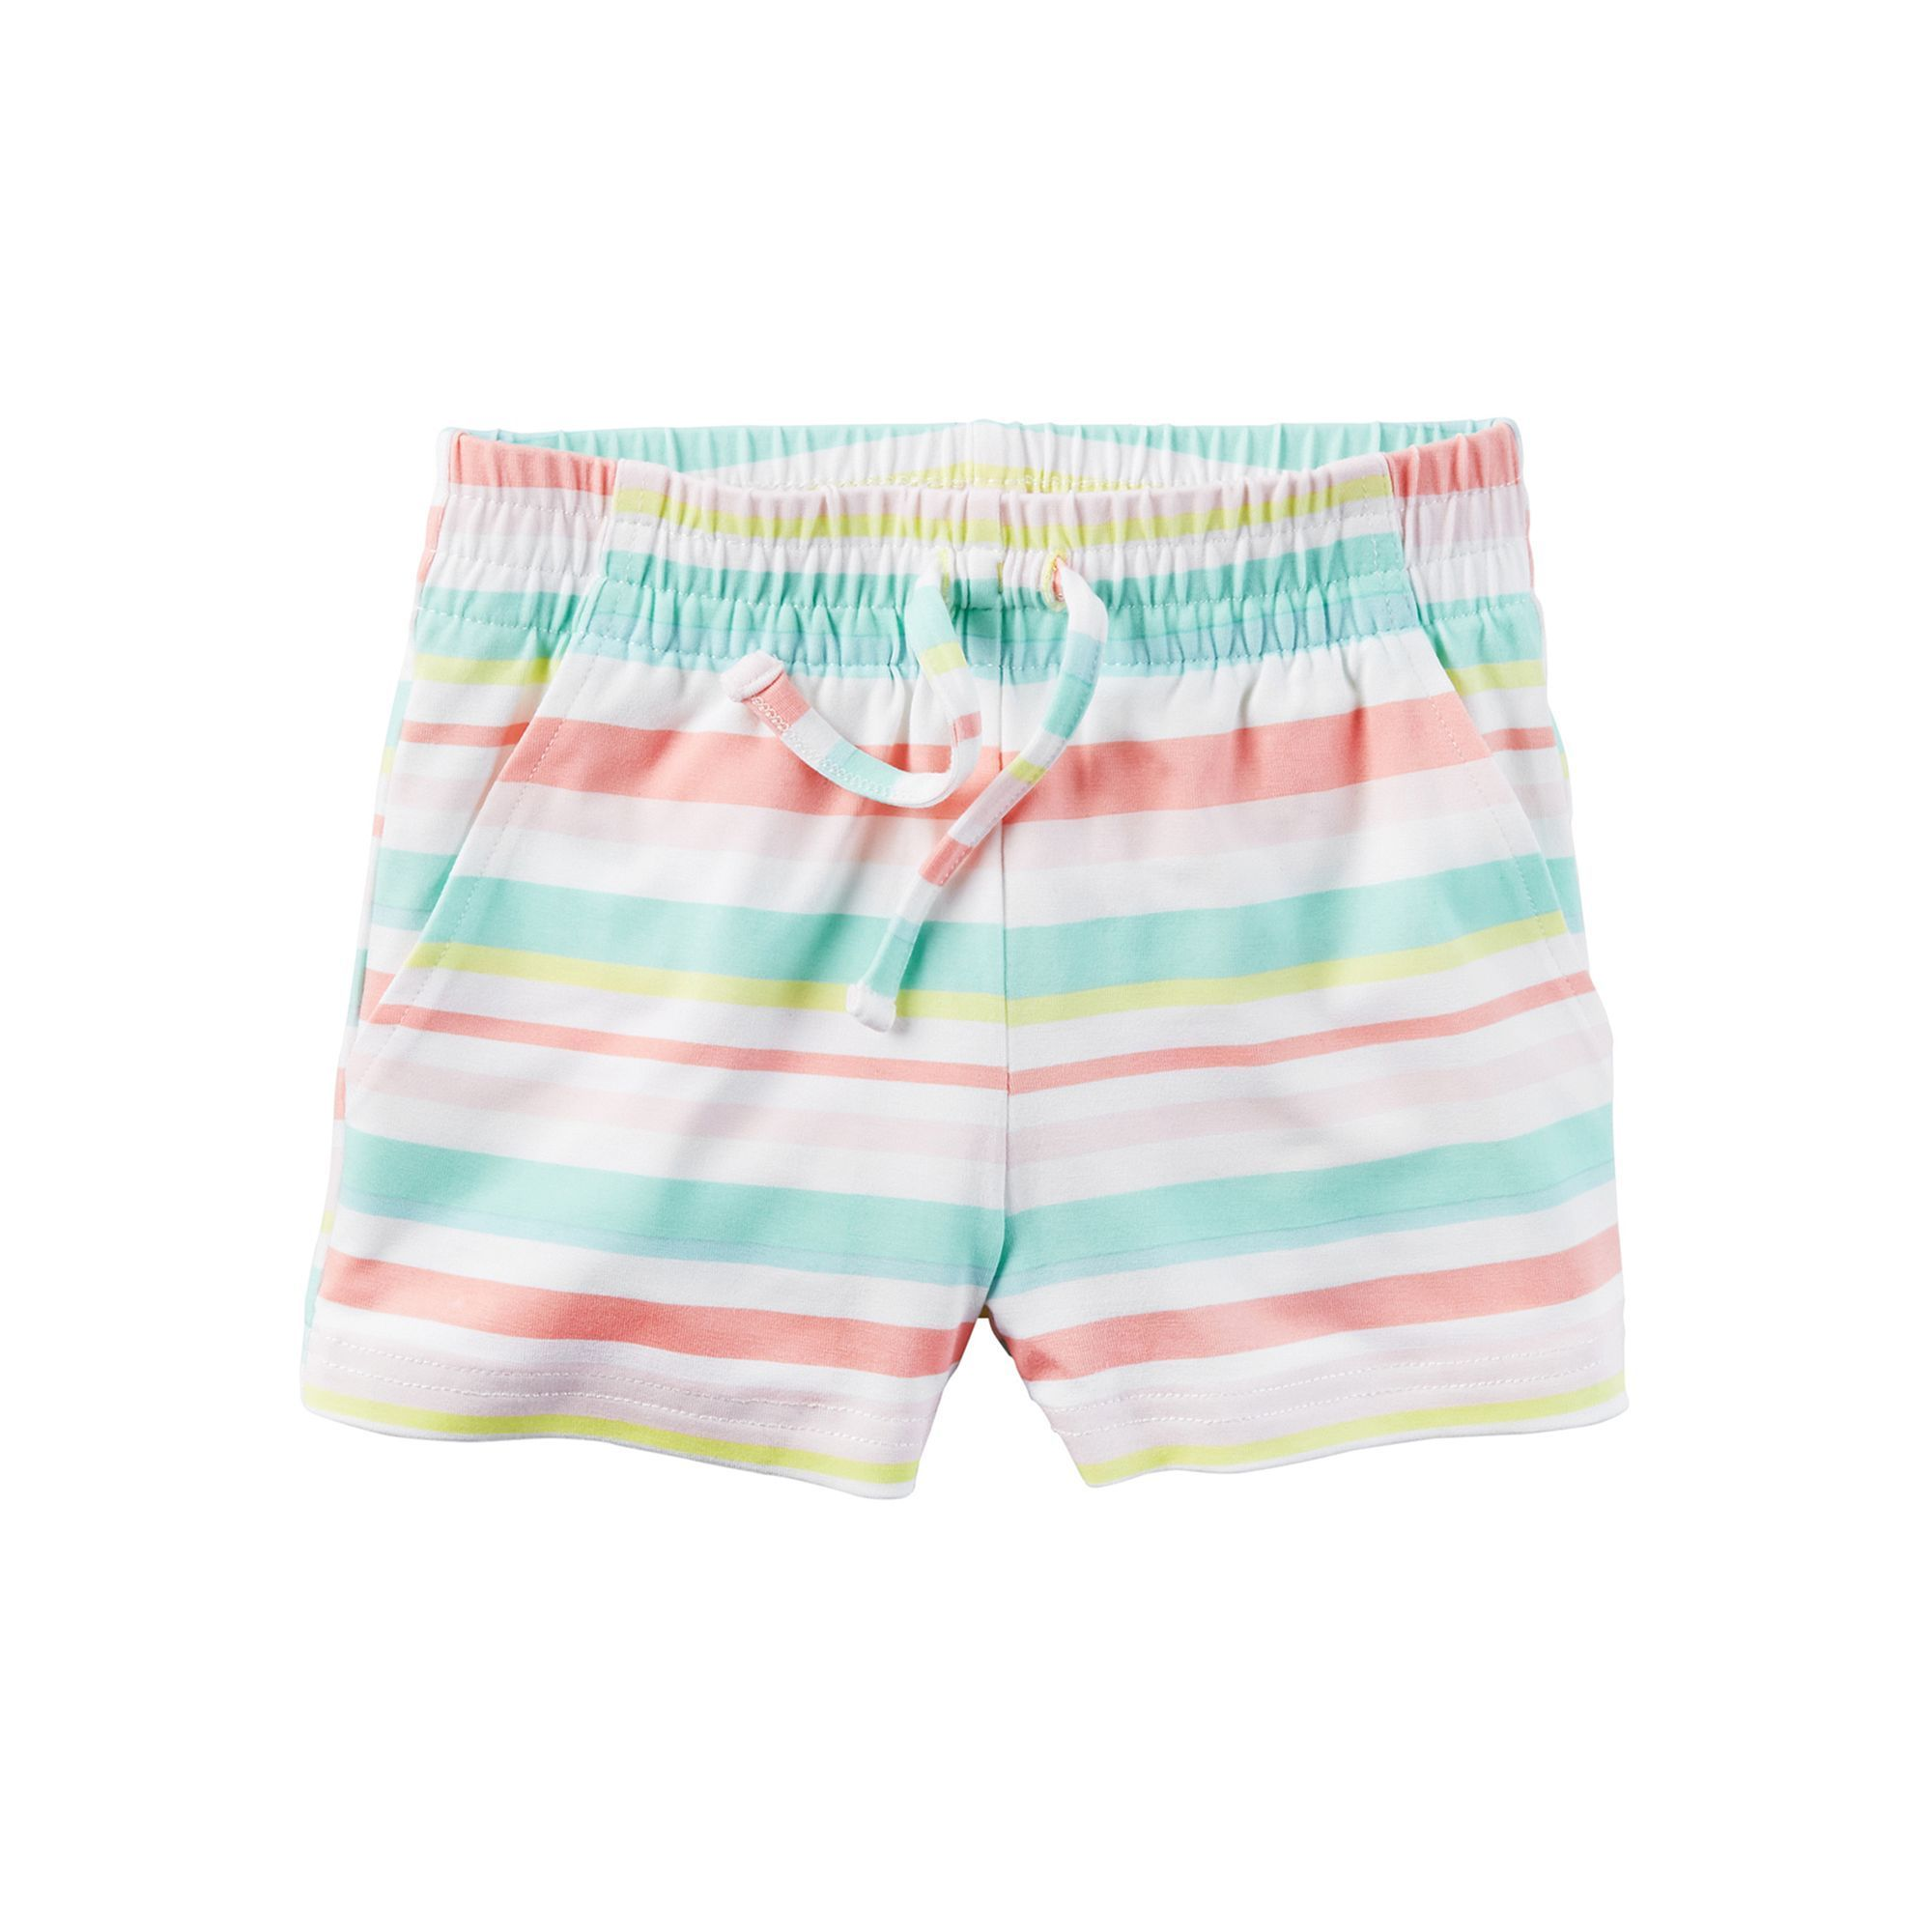 905dfac69 Girls 4-8 Carter's Pull-On Printed Pattern Shorts, Girl's, Size: 6X, Ovrfl  Oth